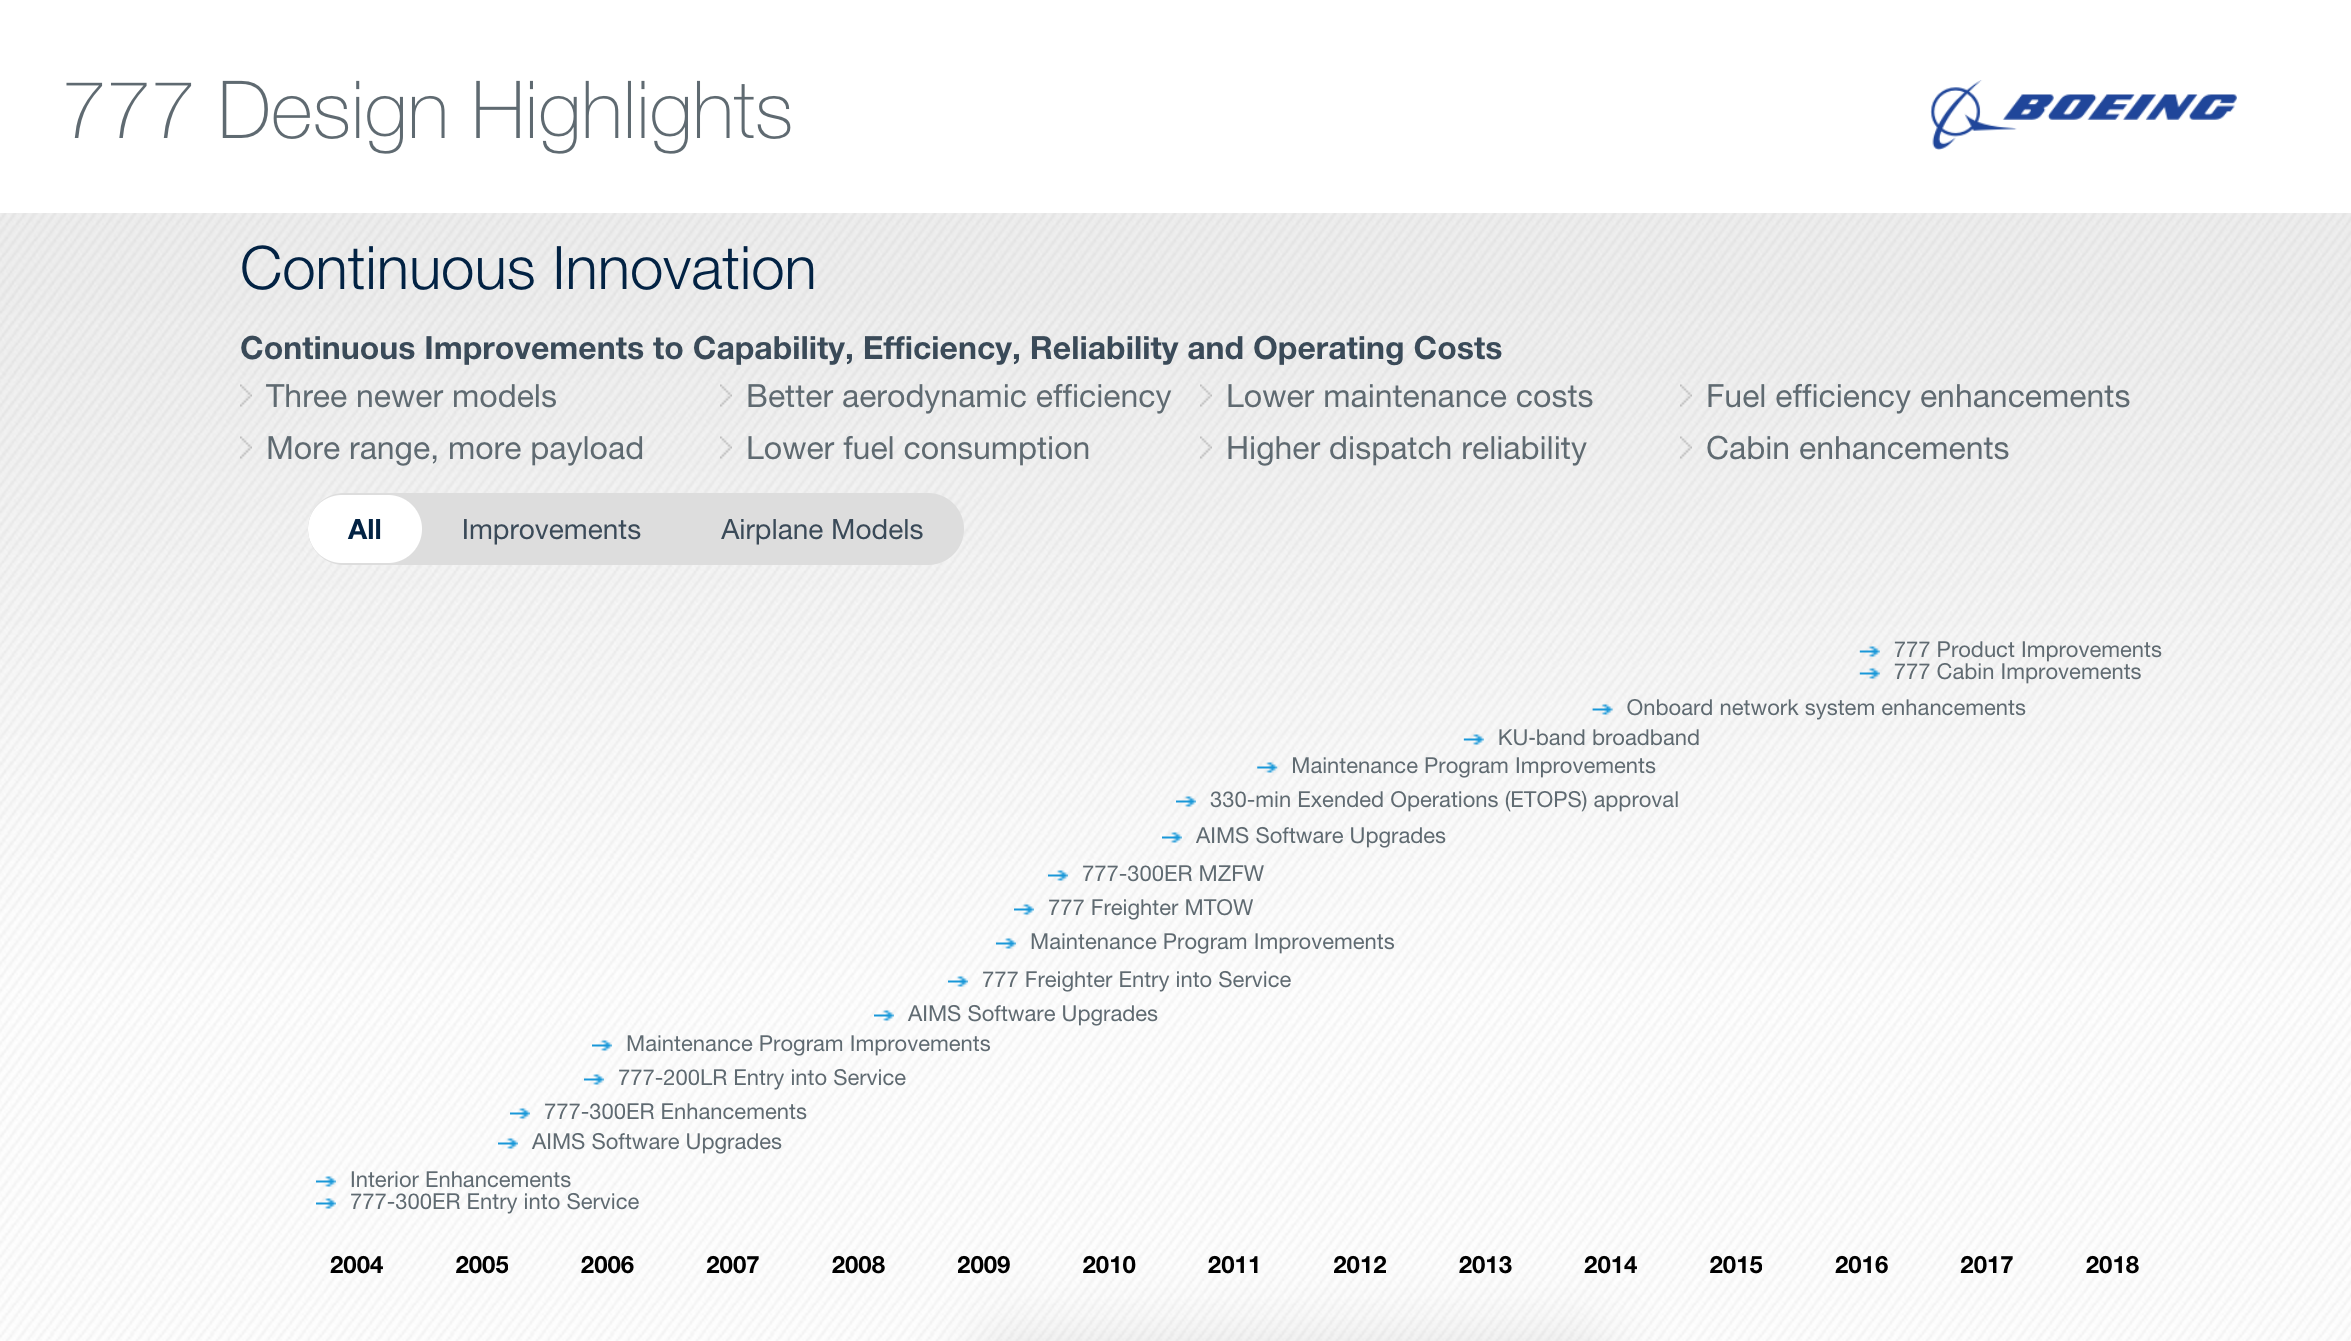 Boeing 777 Innovation Timeline